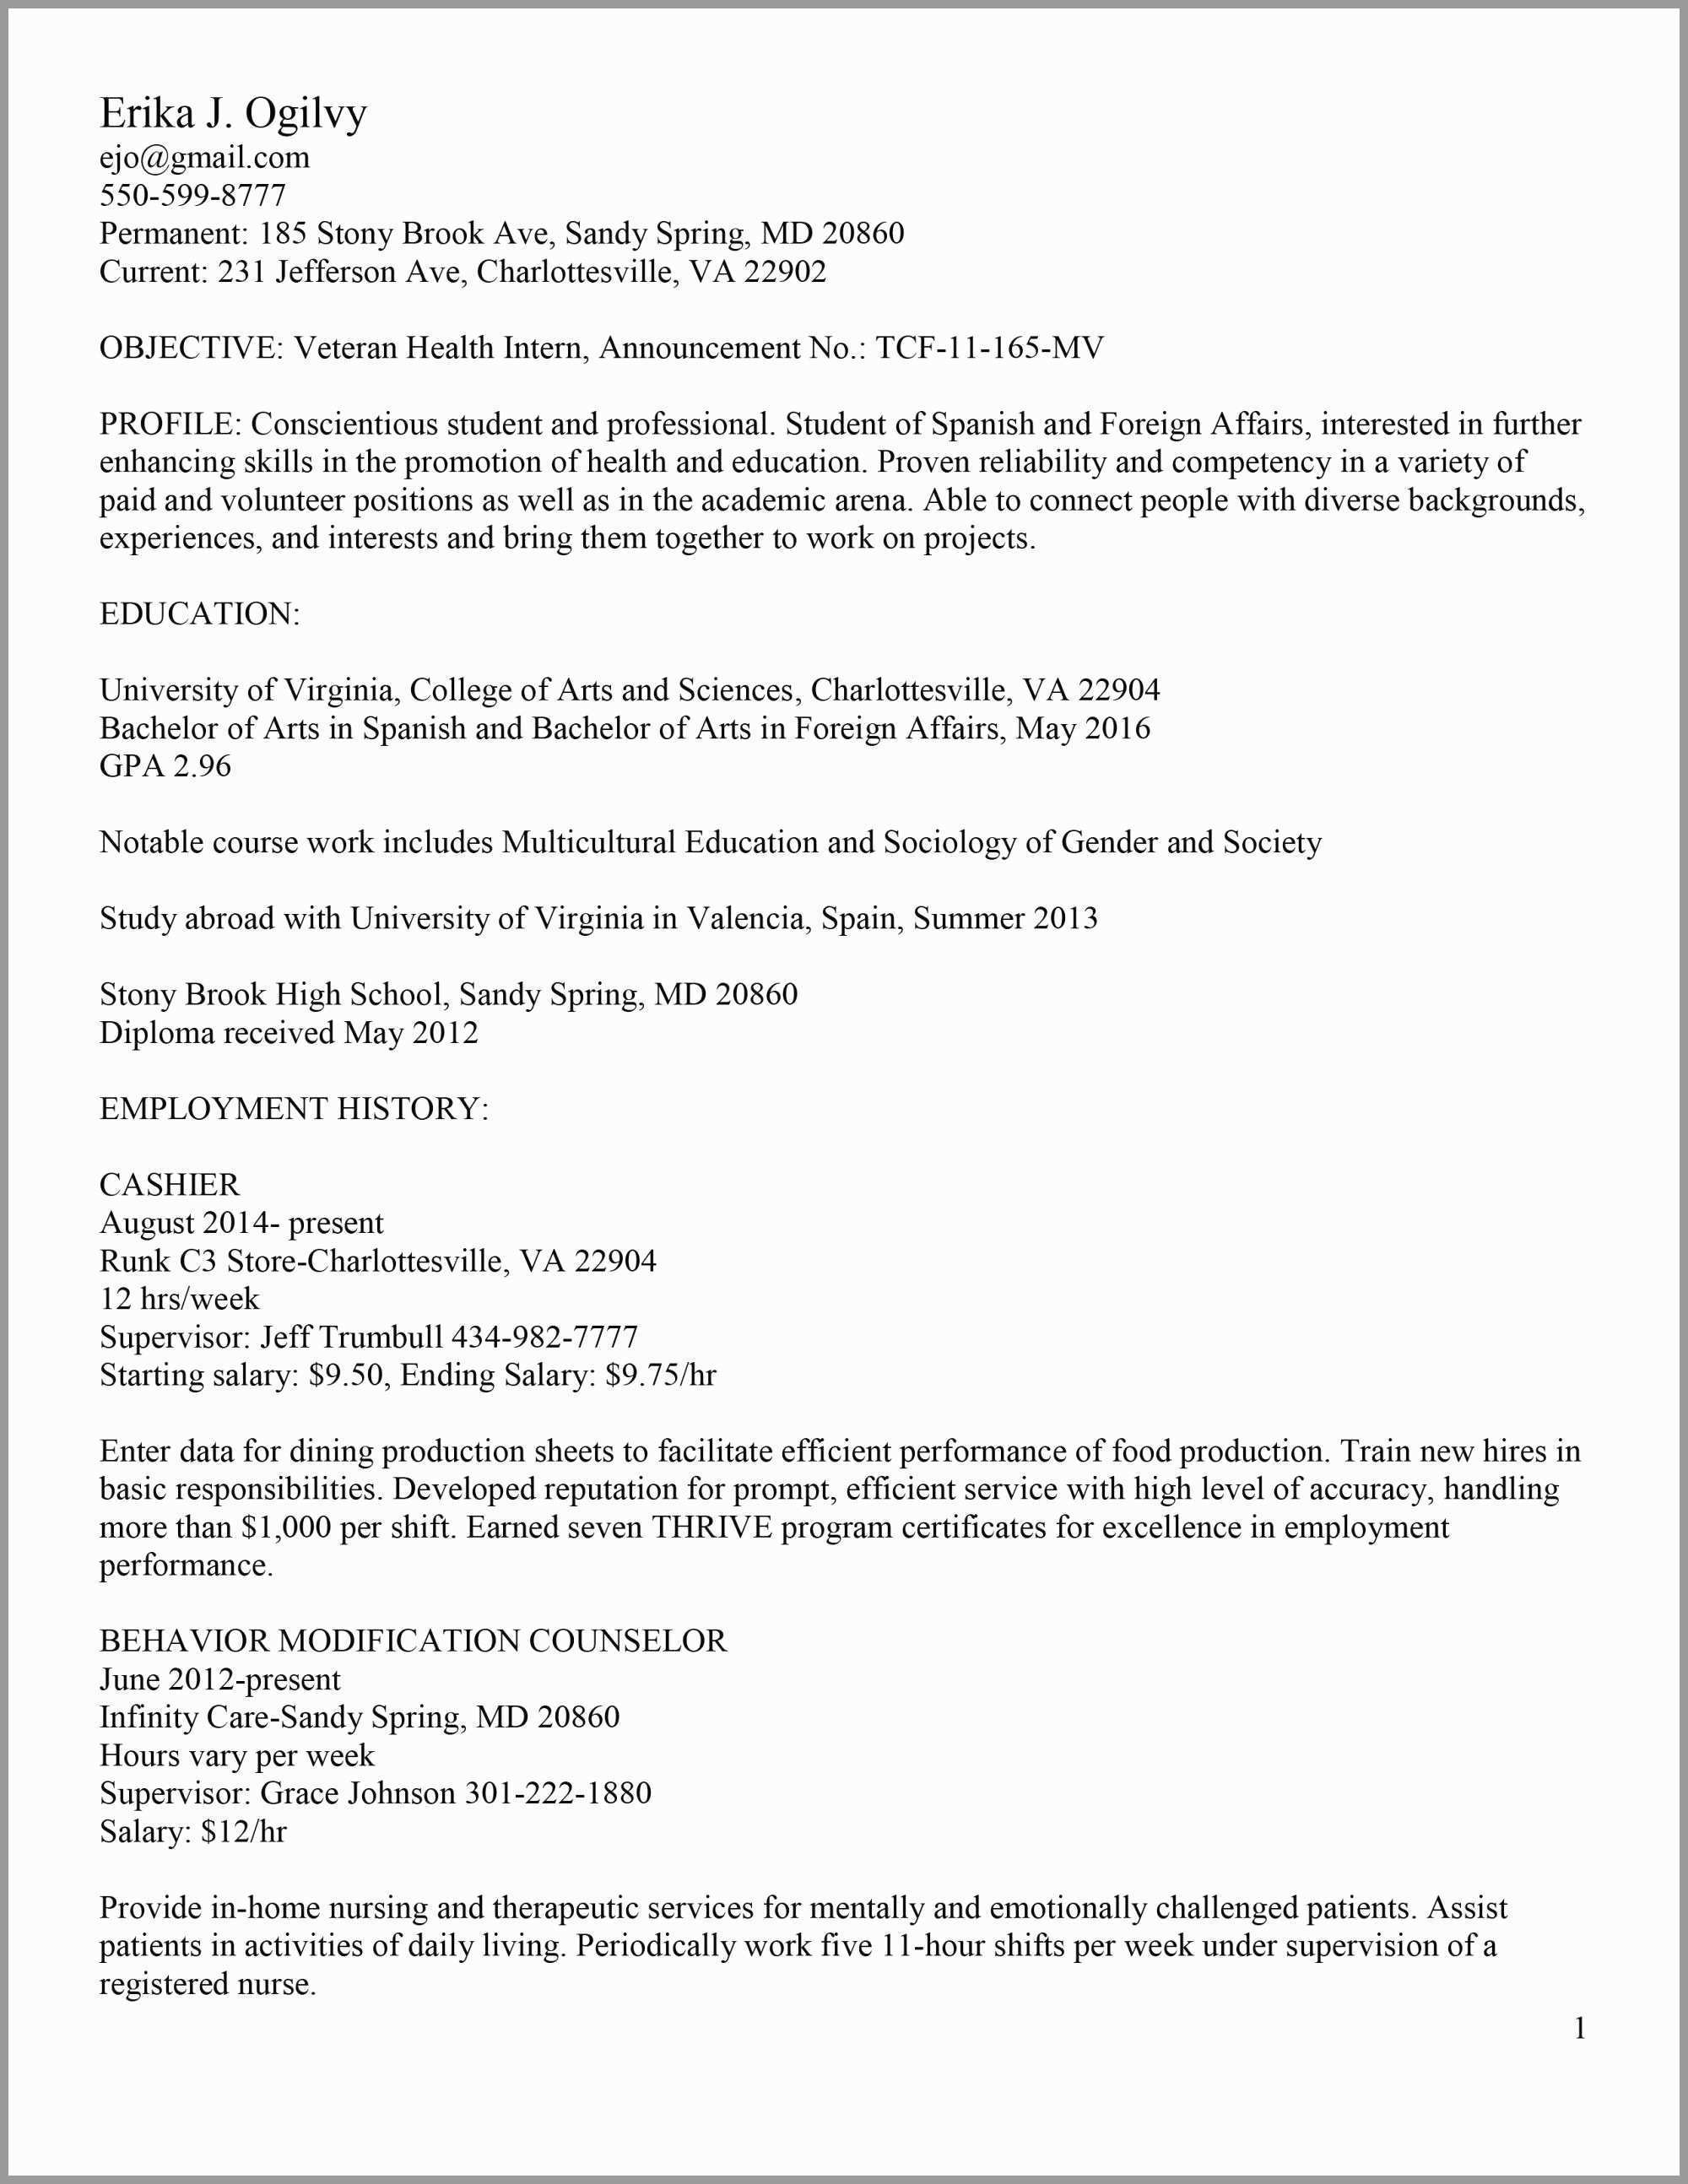 Technical theatre Resume Template - Professional theatre Resume Template Cute Tech theatre Resume